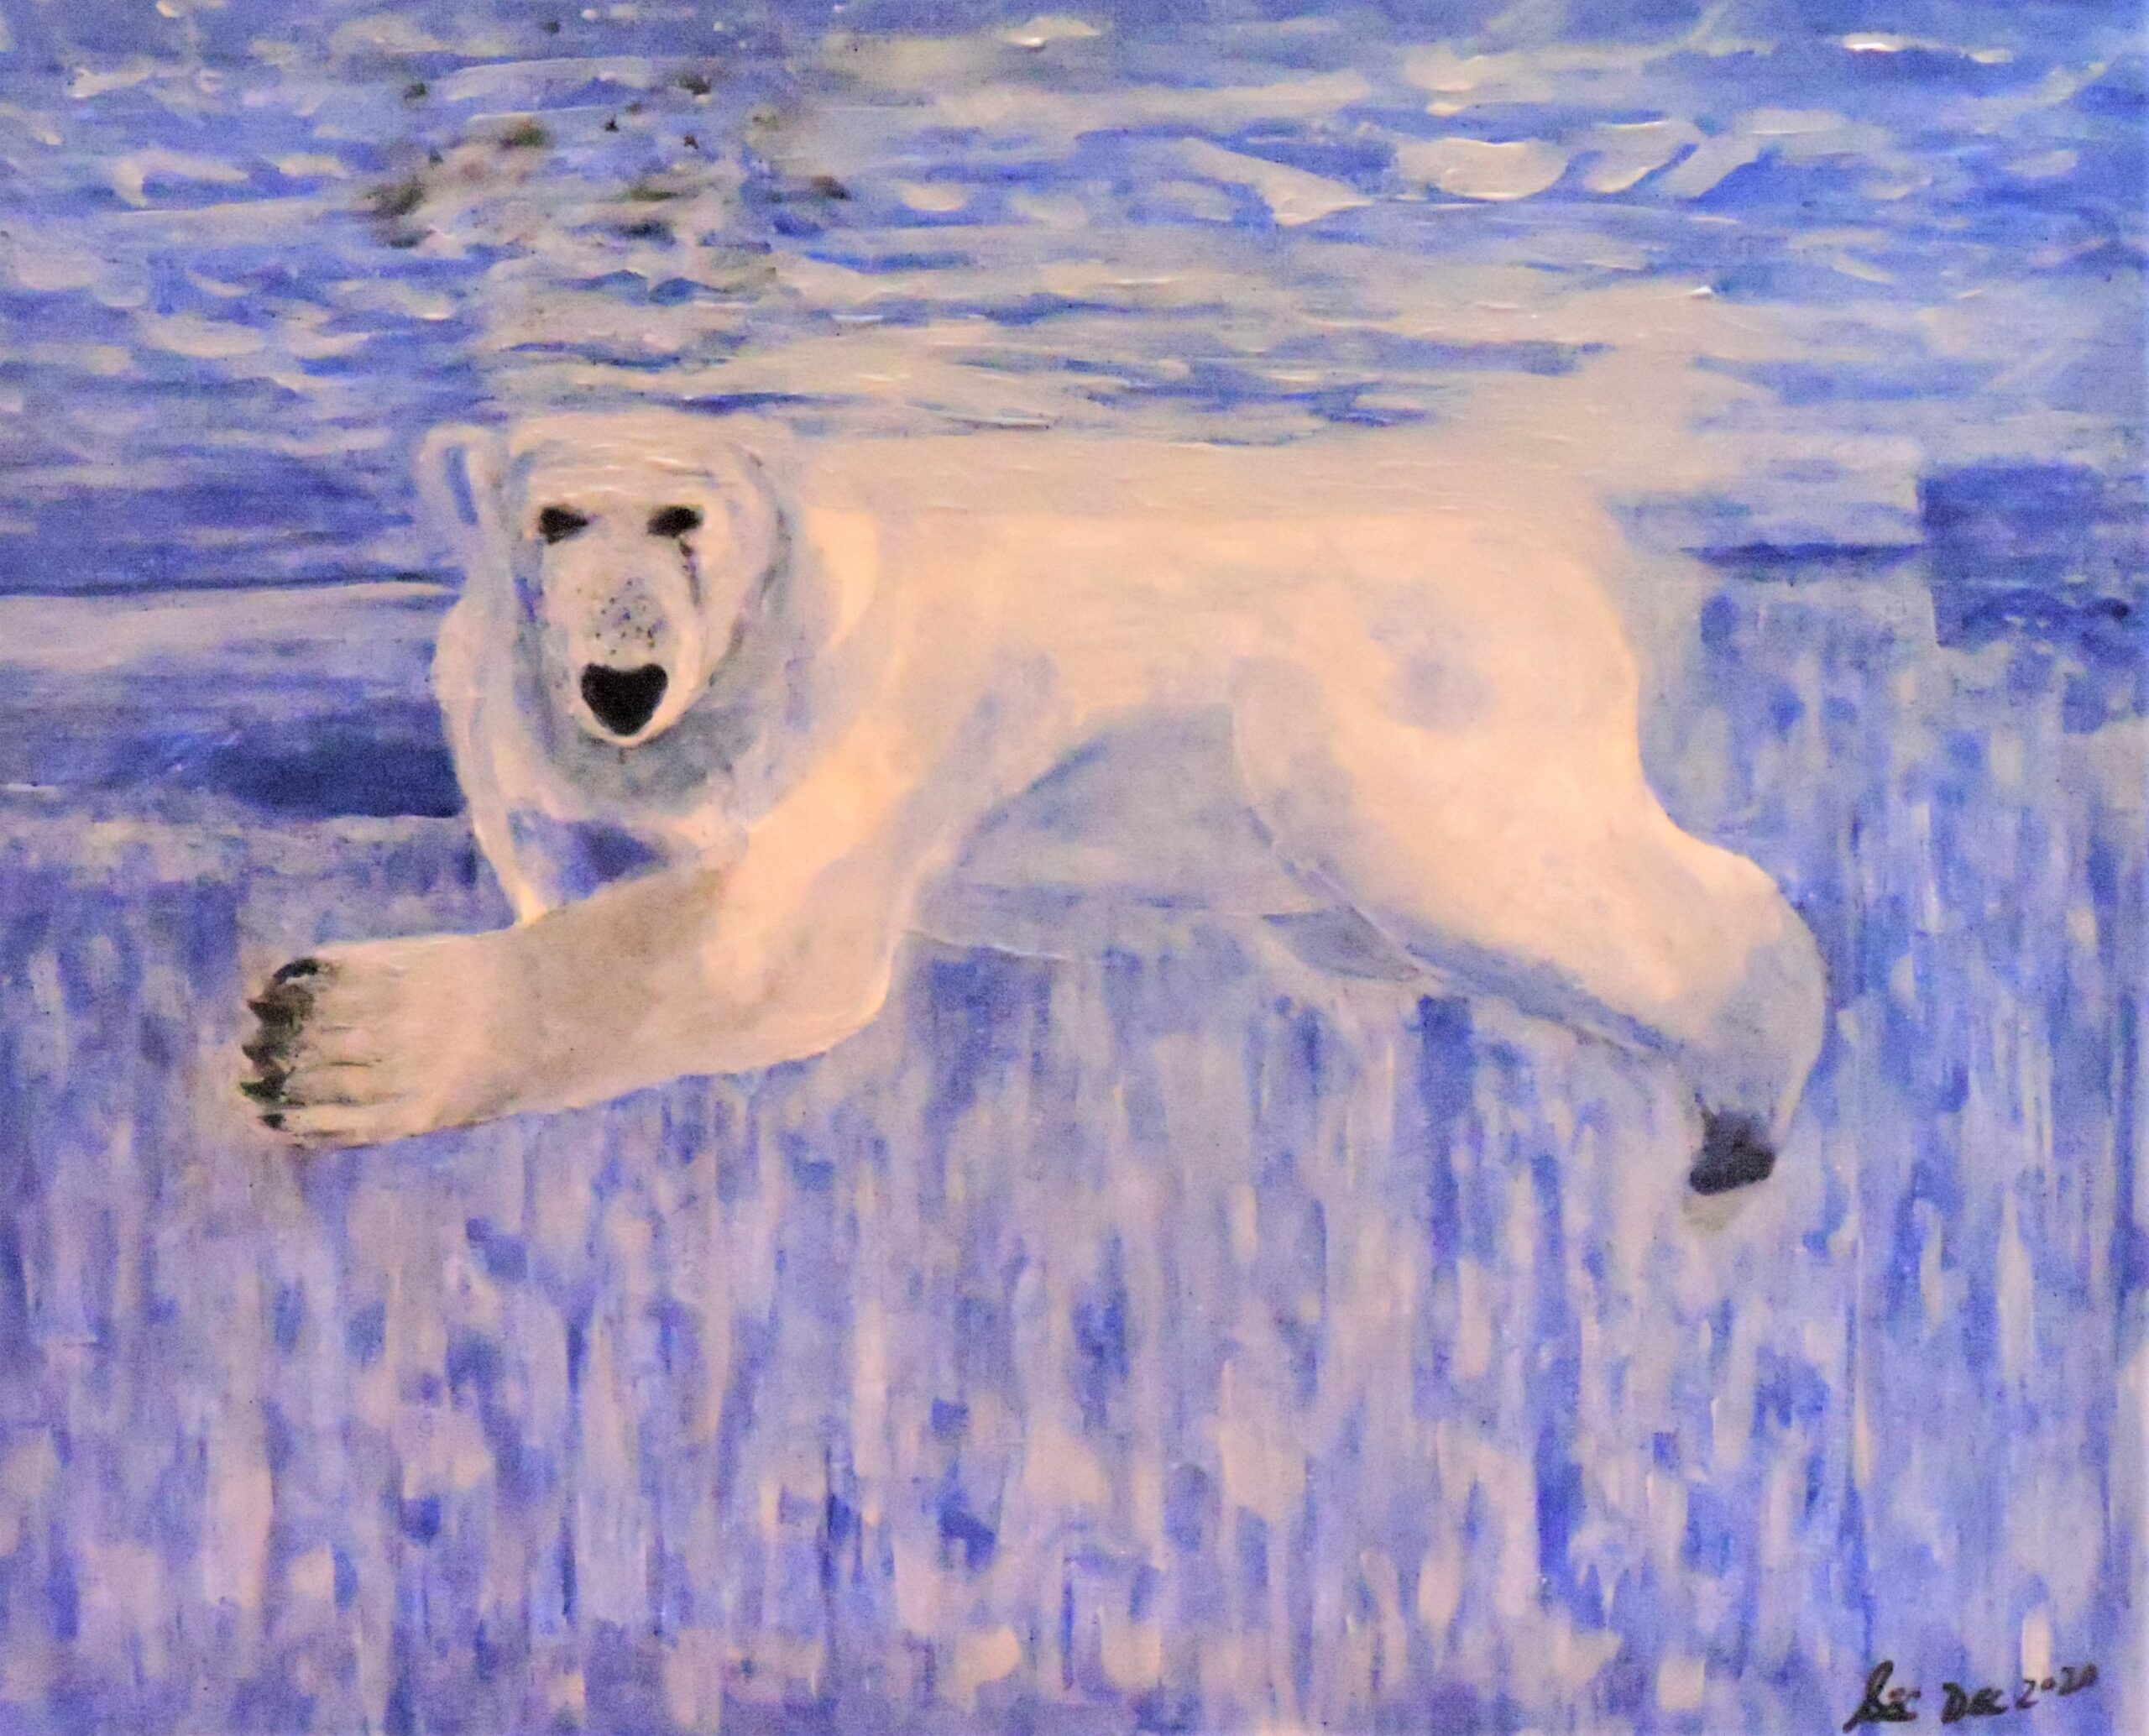 Painting of a polar bear by Sherry Crawford.